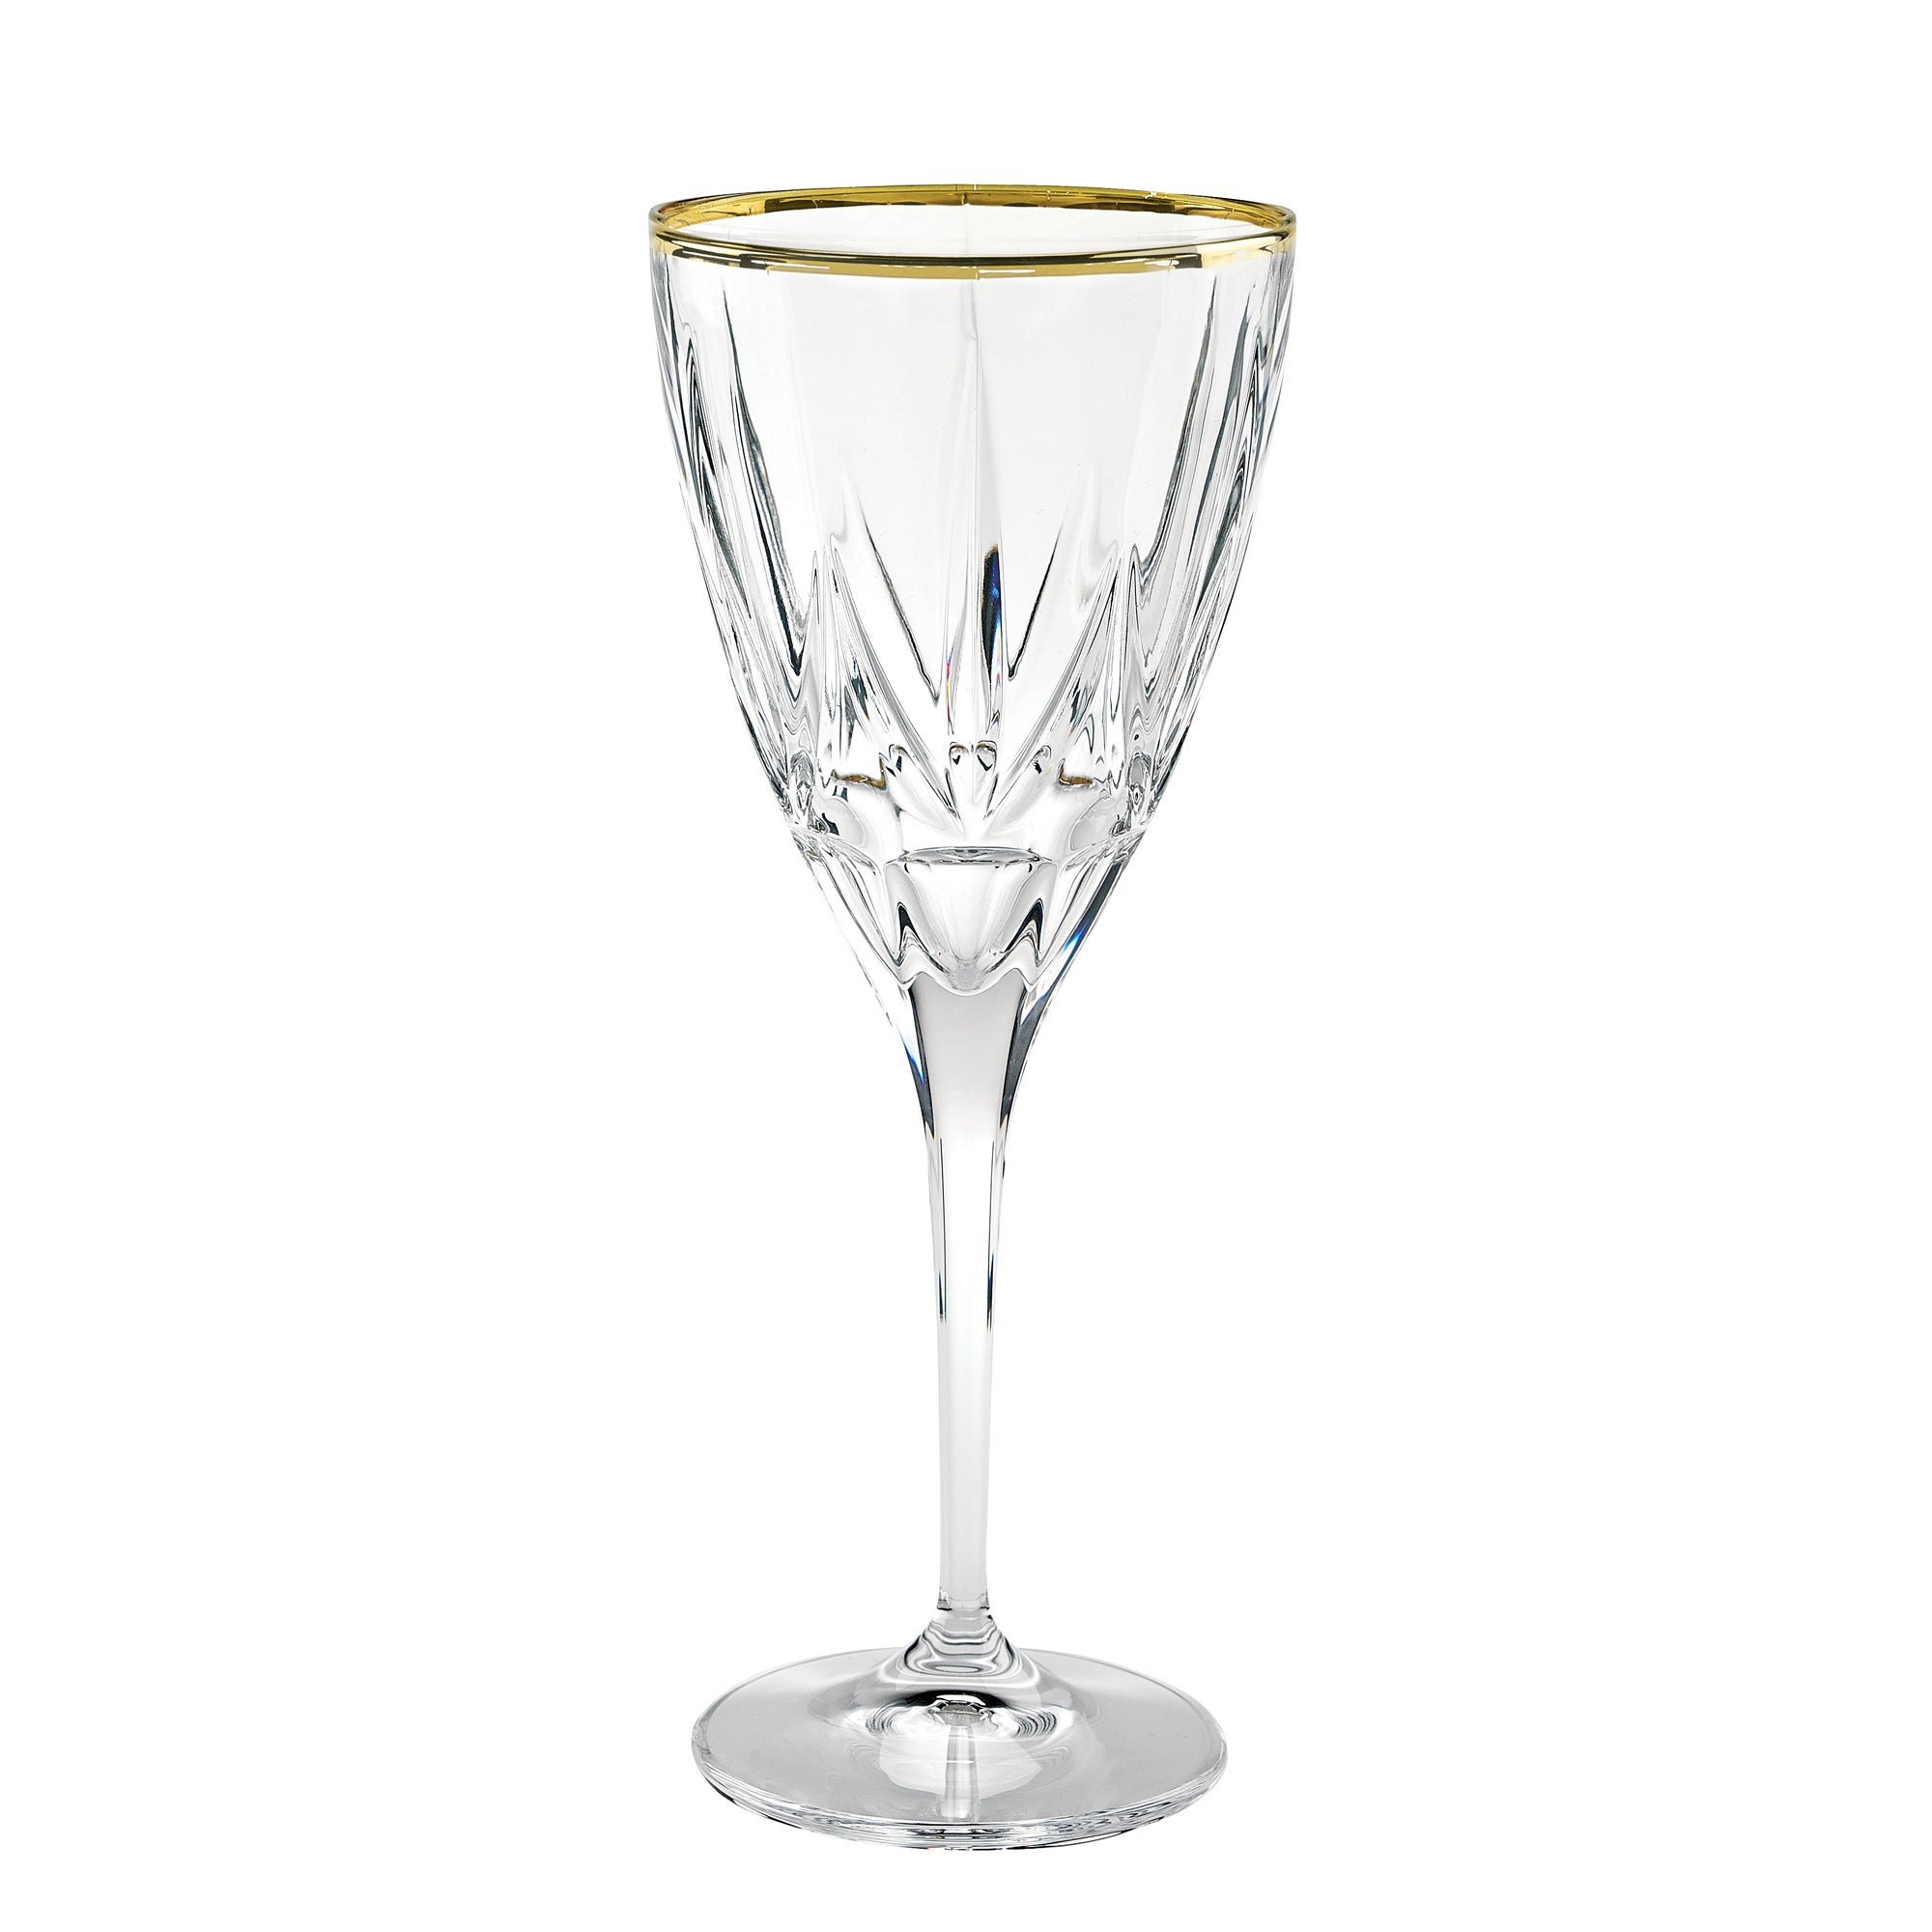 Lorren Home Trends 262310-GD Chic Set of 6 White Wine with 24K Gold Trim Goblets, One Size, Clear